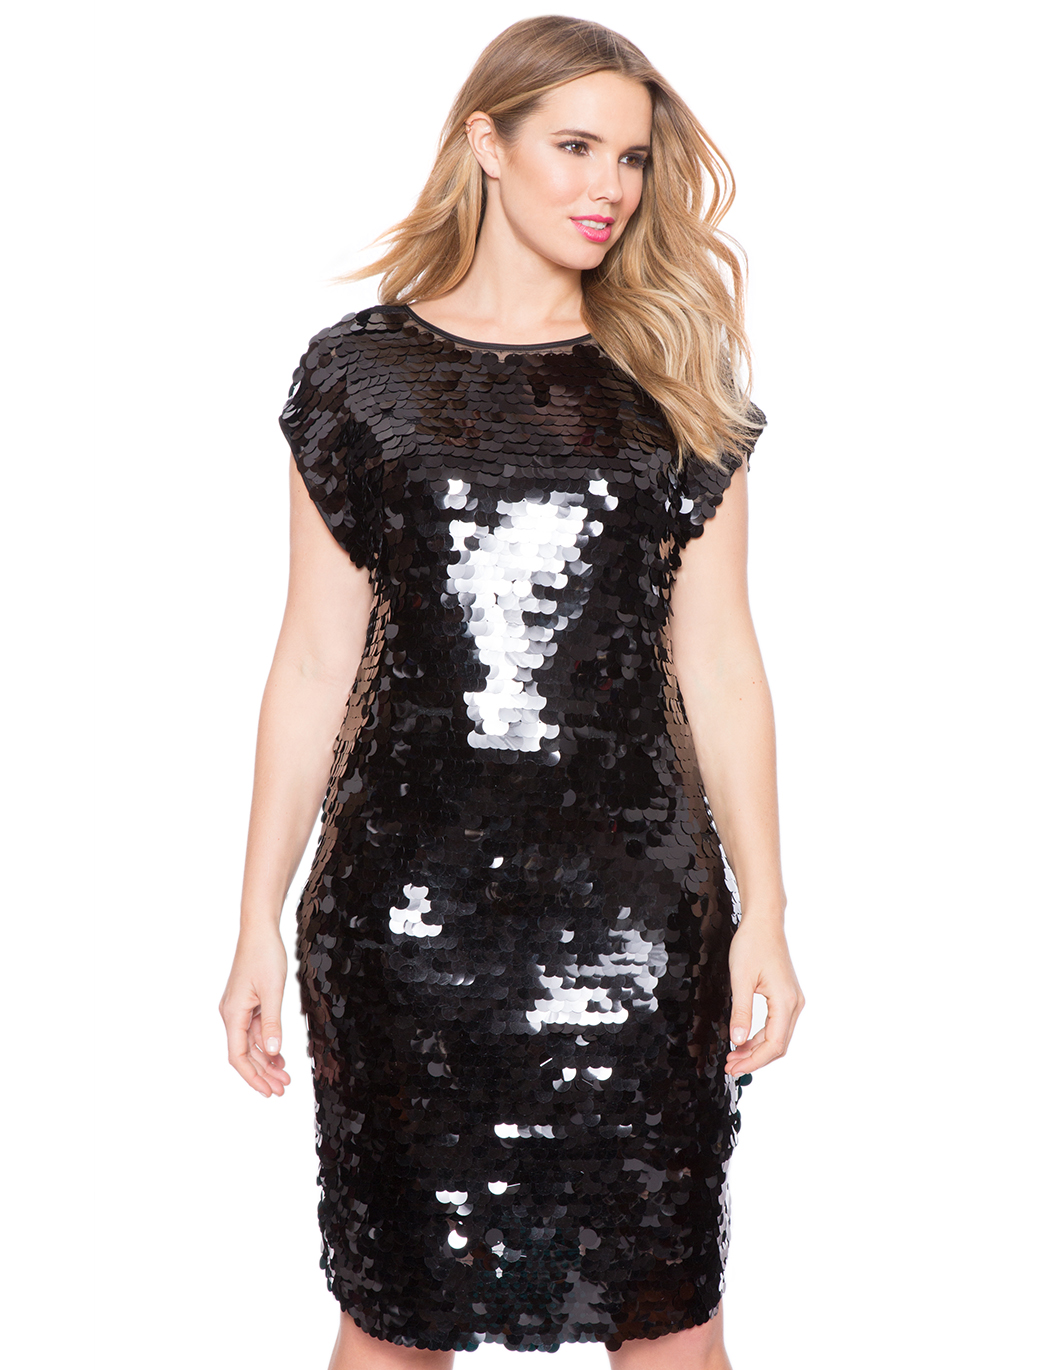 Studio Sequin Party Dress | Women\'s Plus Size Dresses | ELOQUII